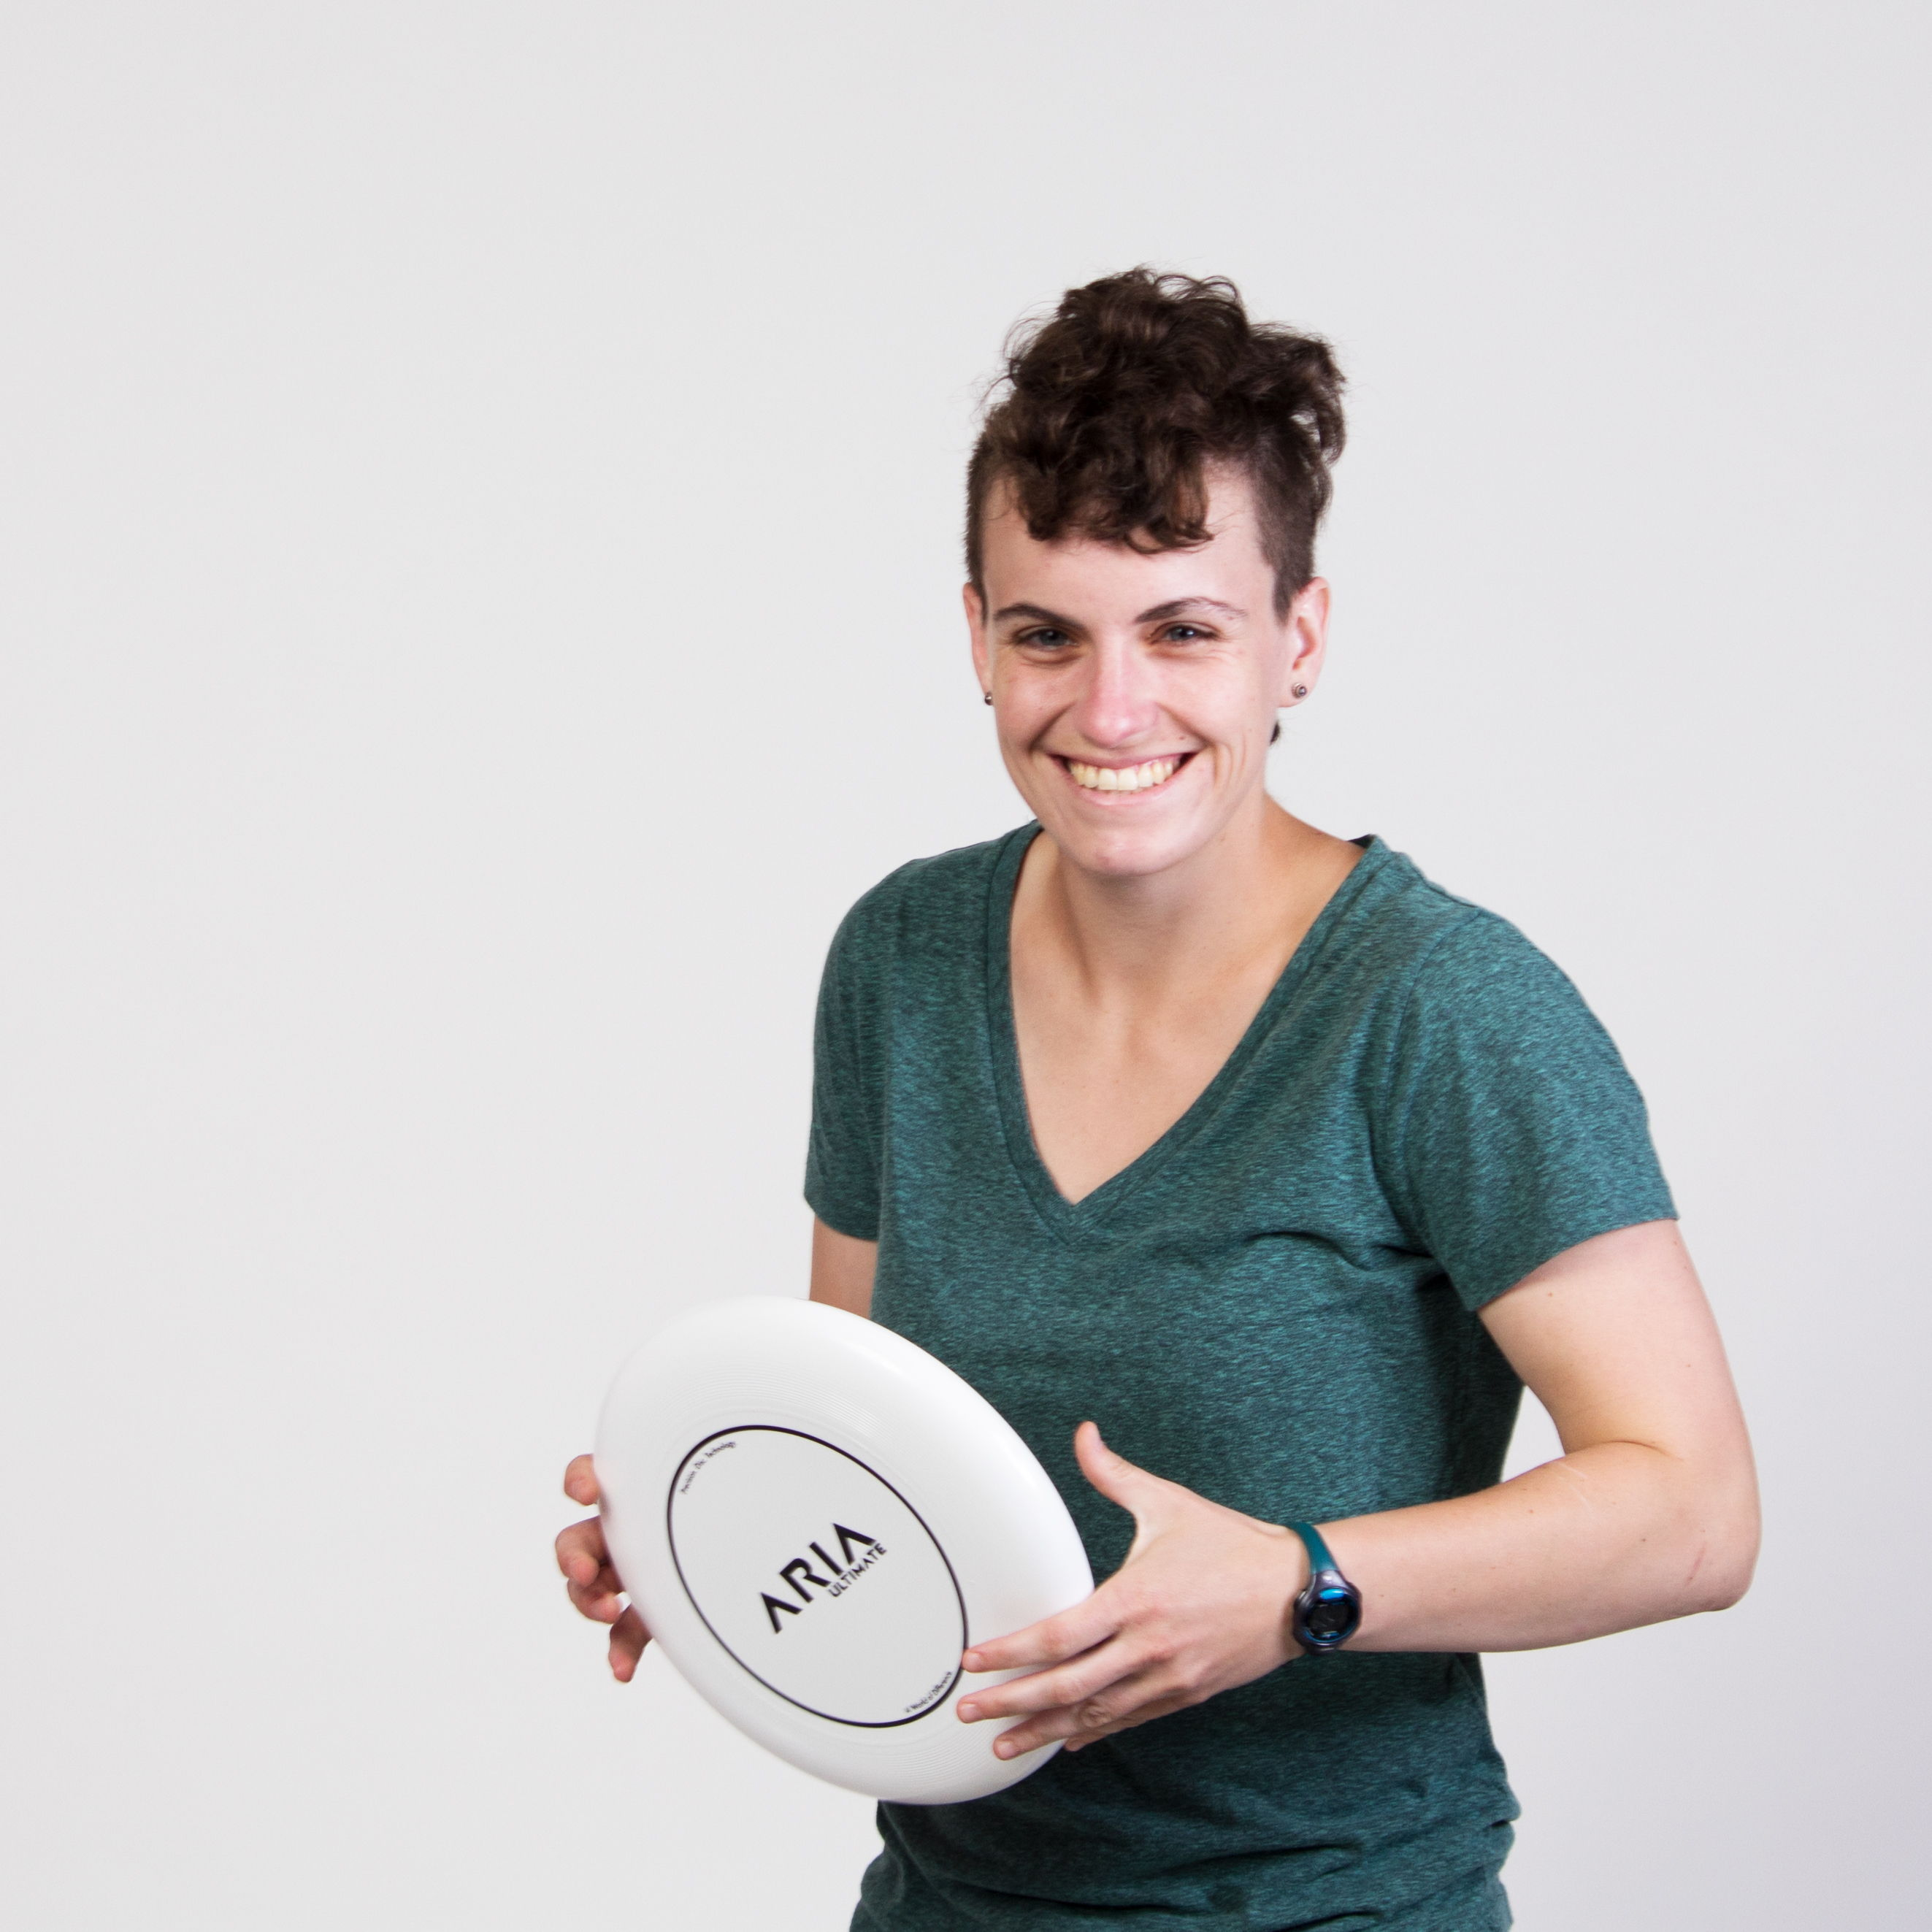 ARIA professional official ultimate flying disc for the sport commonly known as 'ultimate frisbee'  danielle dani osman